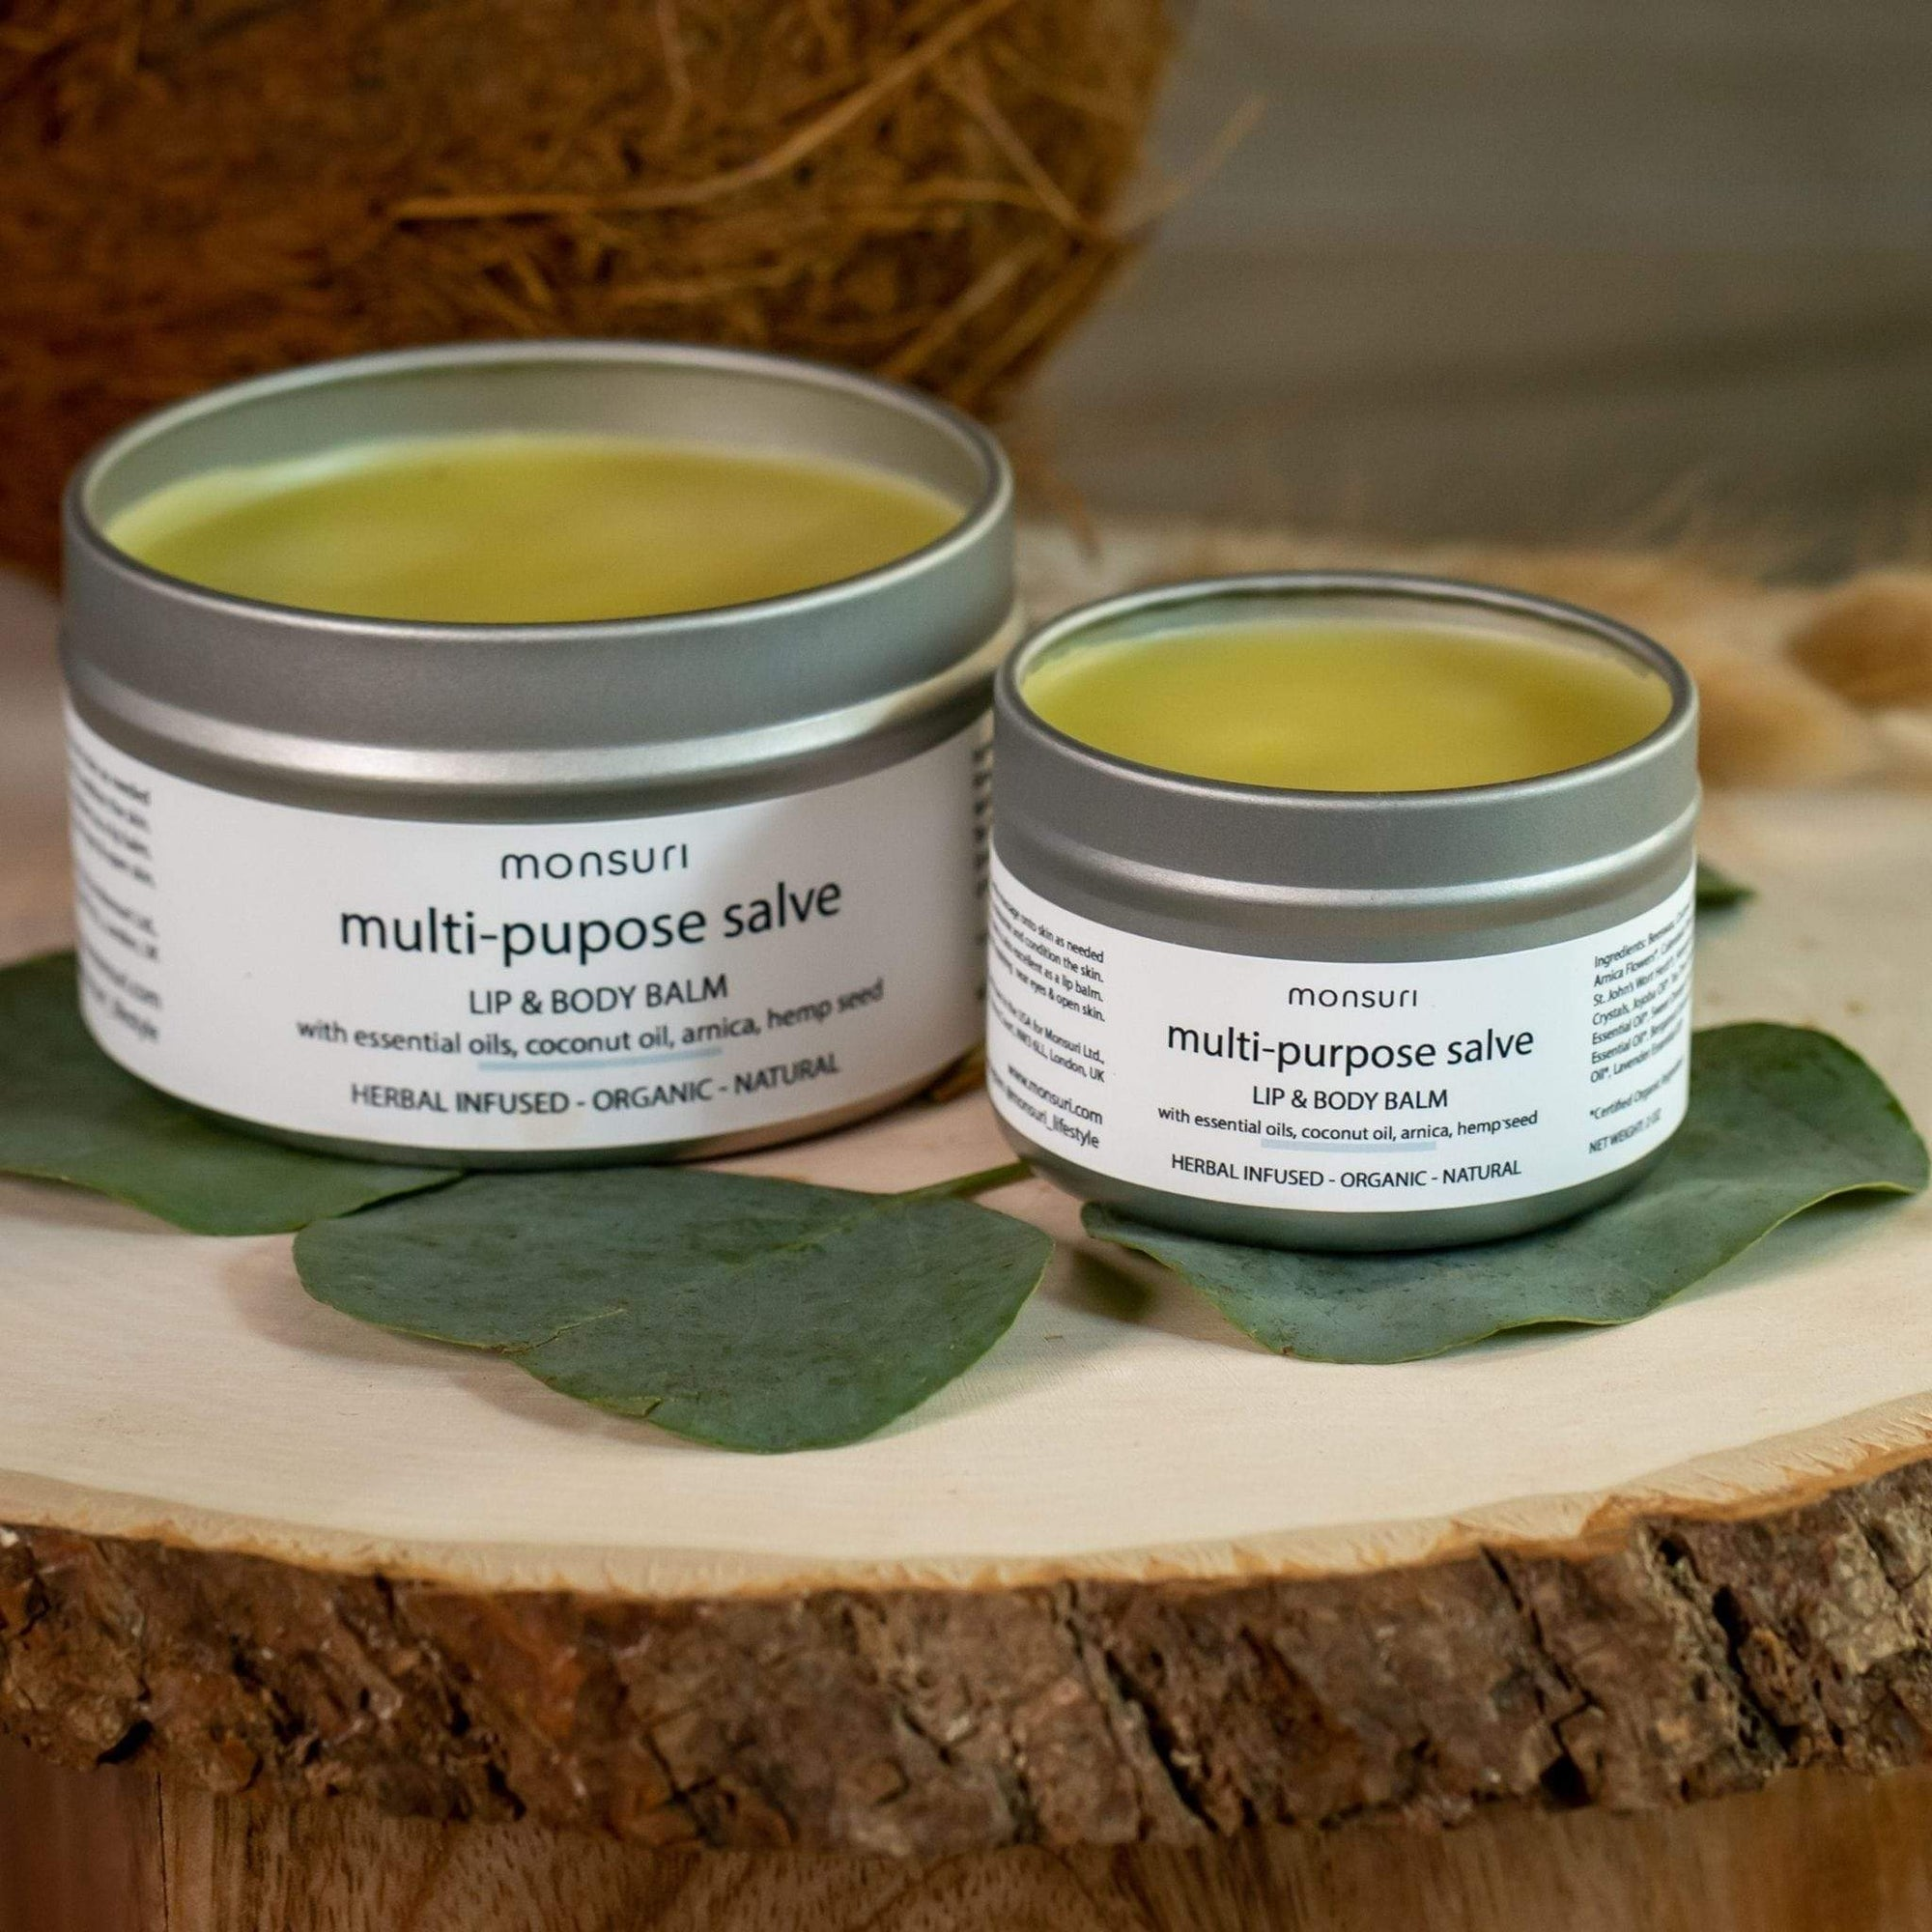 Lip & Body Balm for Women - Infused with Herbals, Organic Essential Oils, Coconut, Arnica and Hemp Seed.